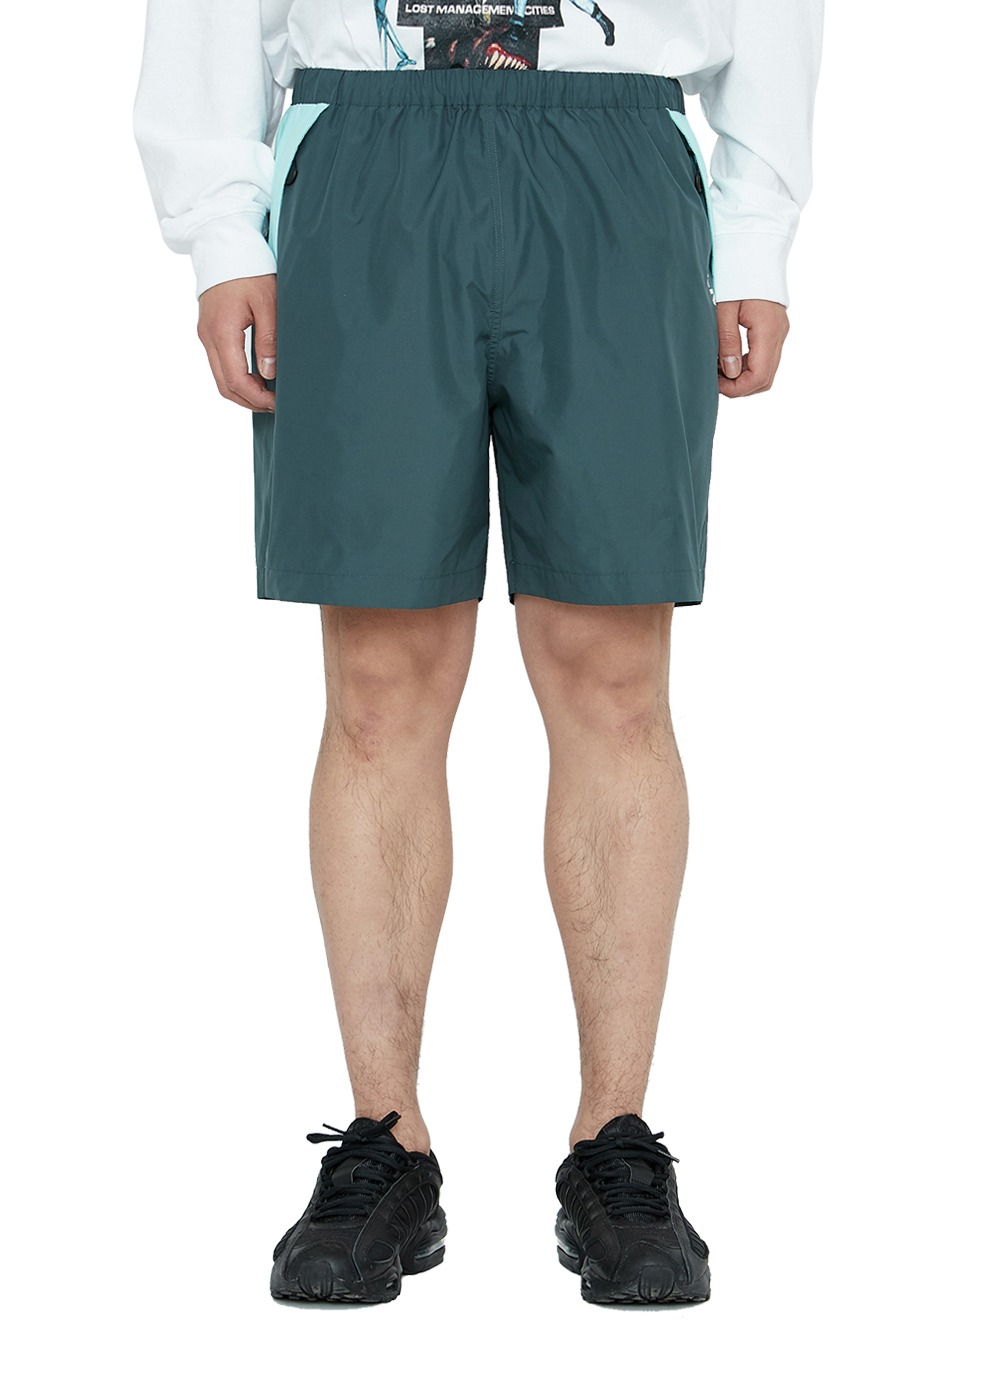 LMC BMD TRACK SHORTS teal